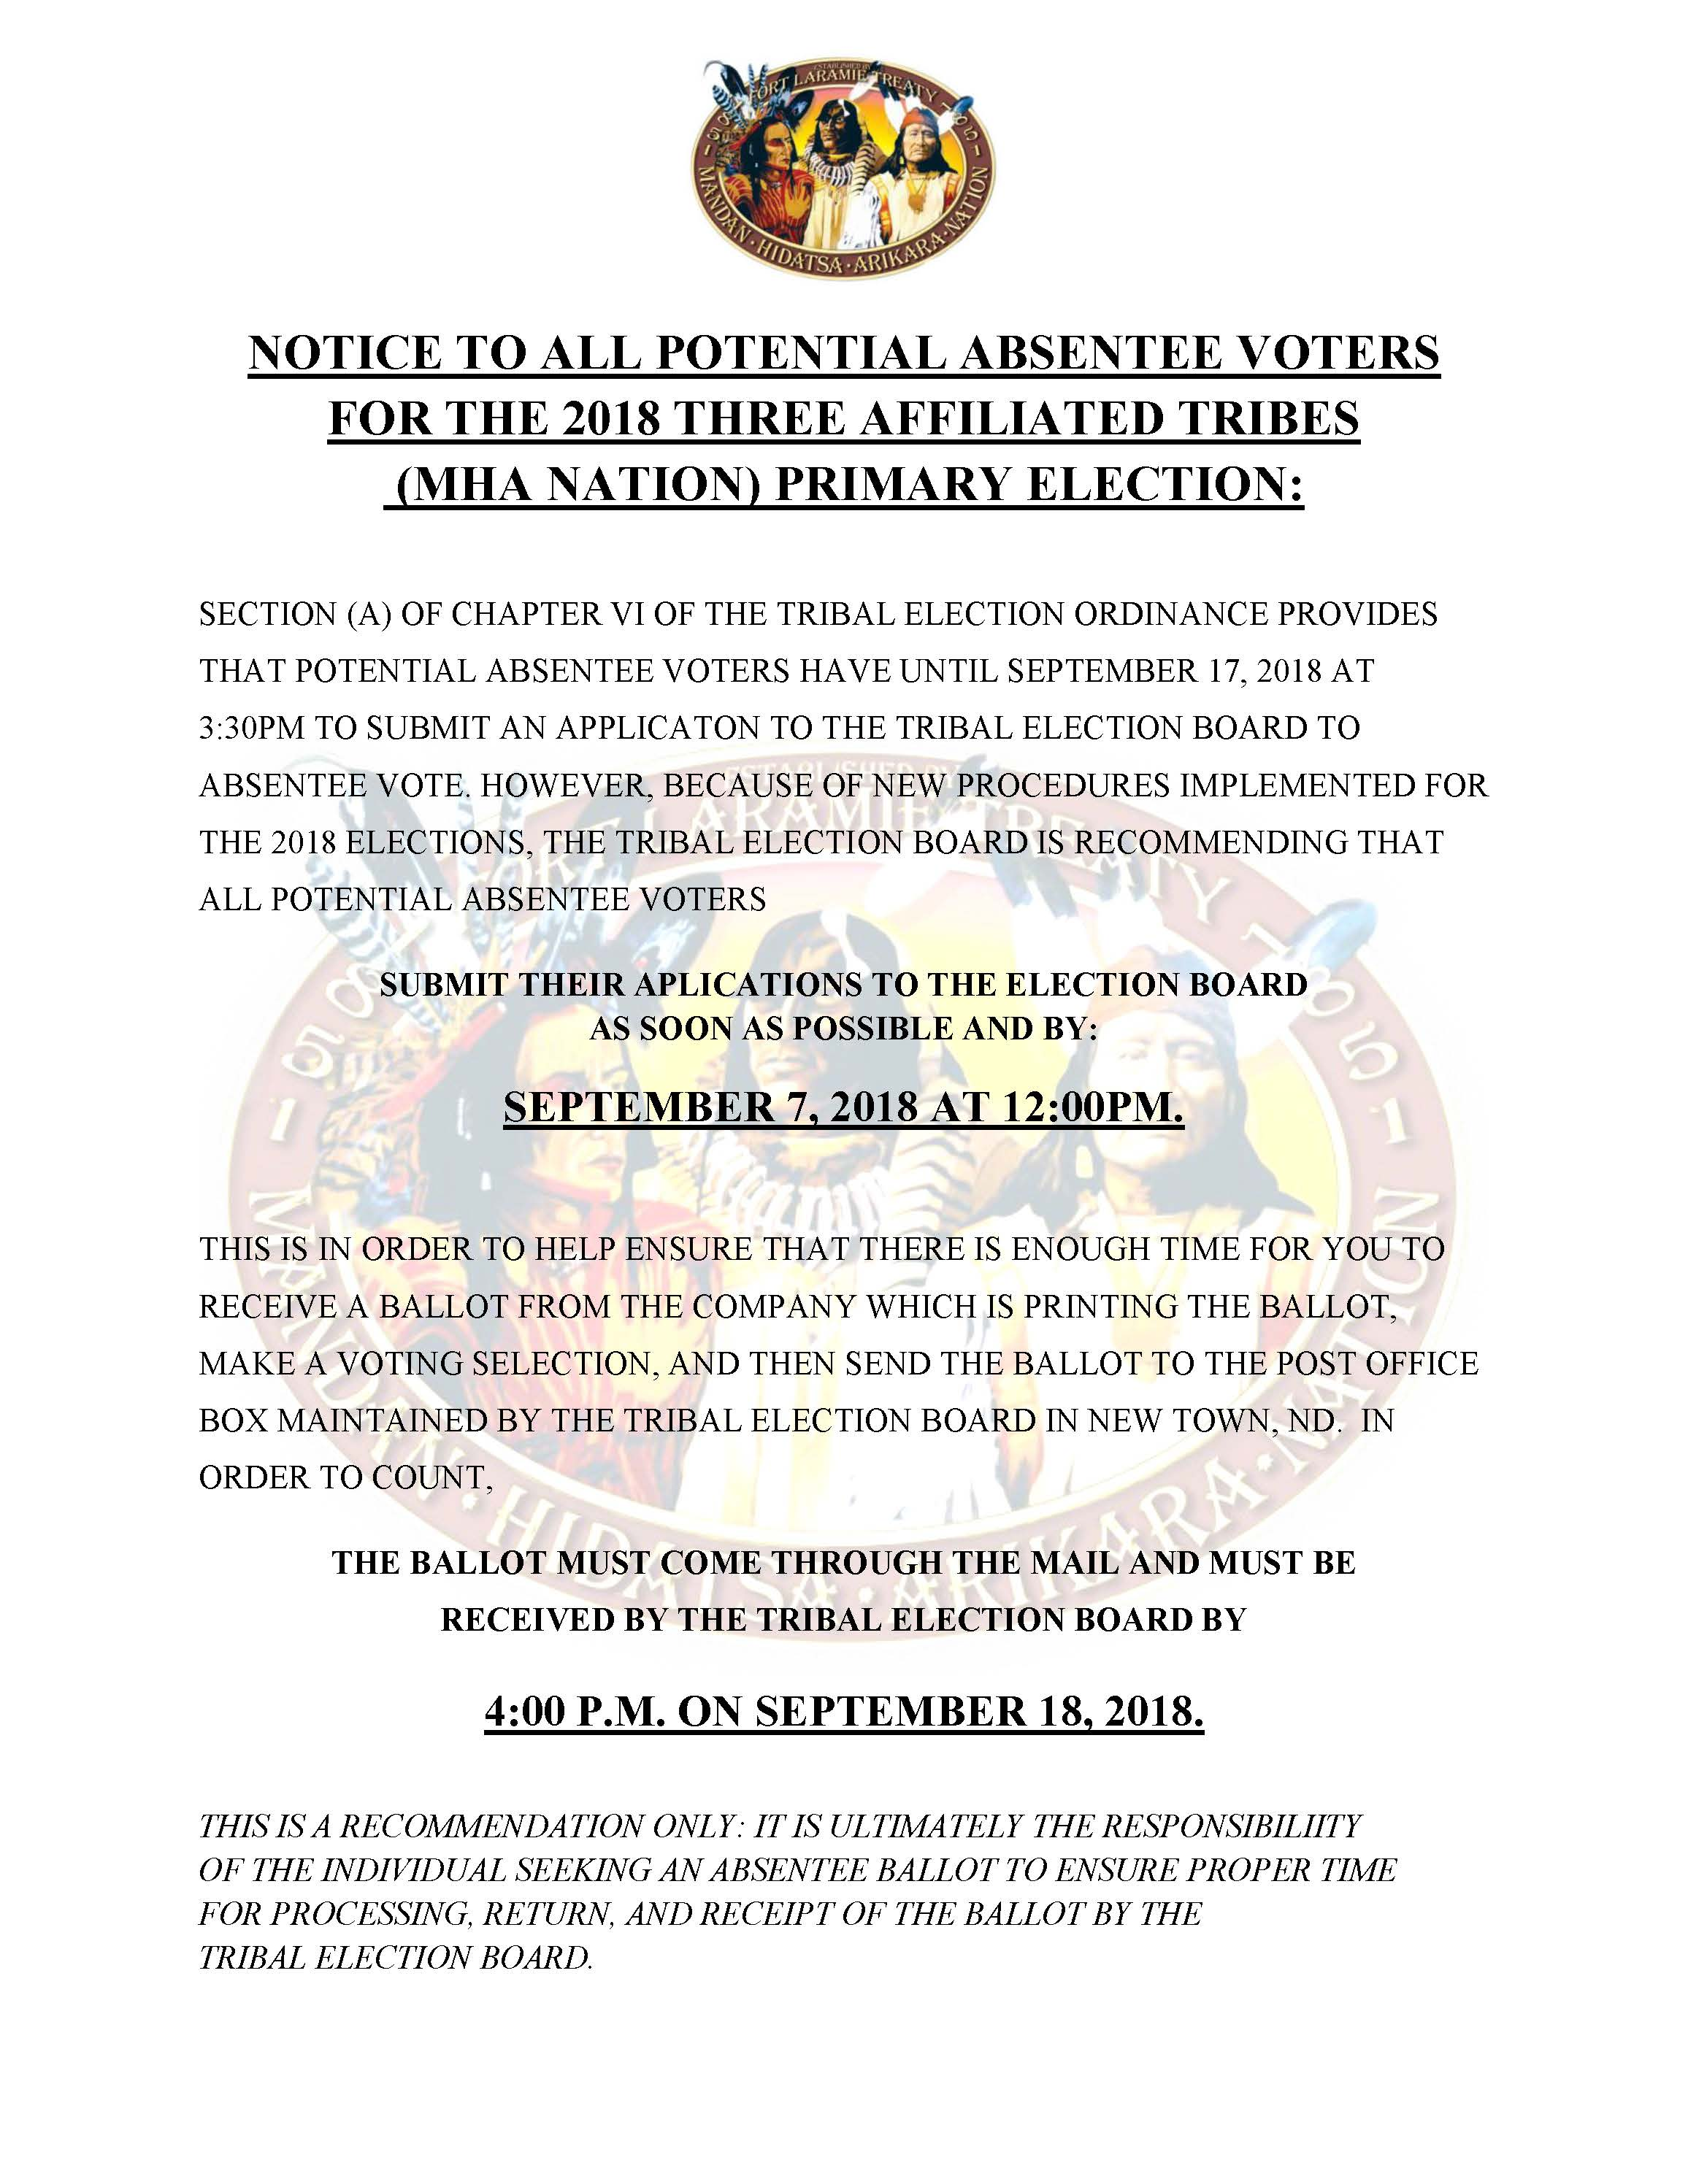 NOTICE TO ALL POTENTIAL ABSENTEE VOTERS FOR THE 2018 THREE AFFILIATED TRIBES_.jpg